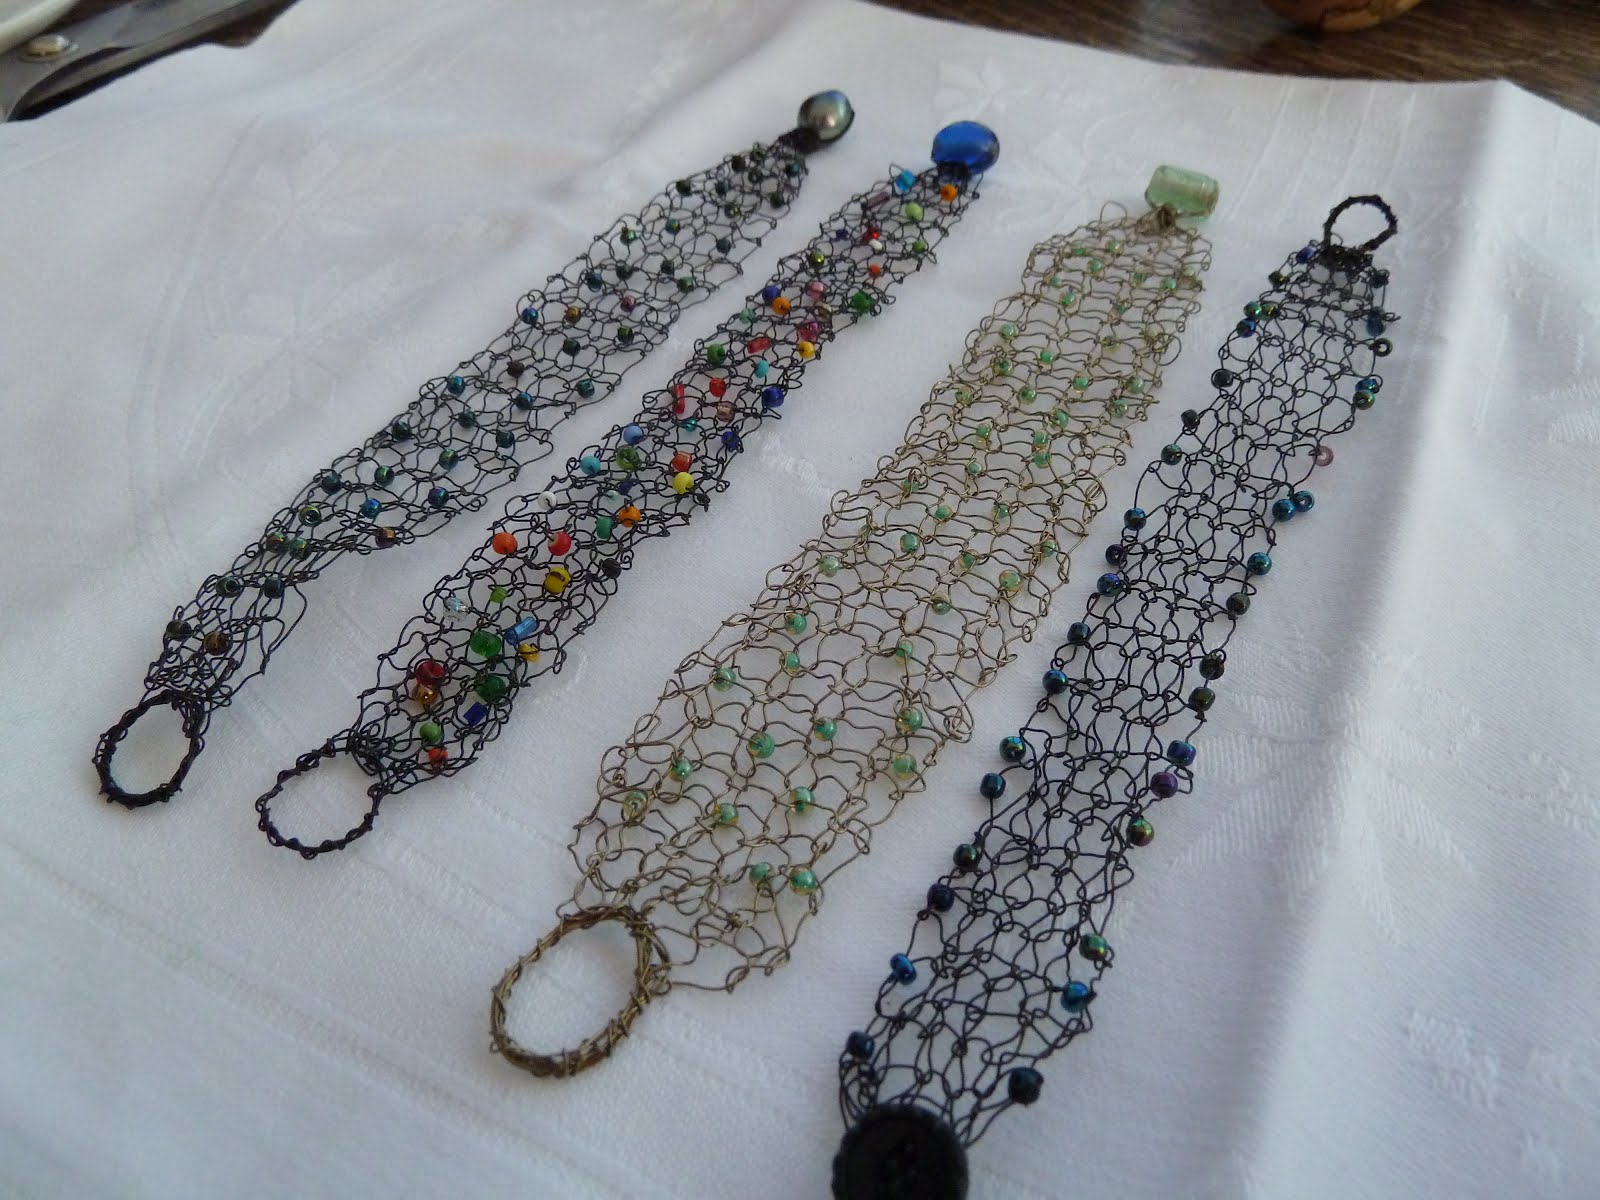 Knitting With Wire And Beads : Judi knits and sews knitting with wire beads